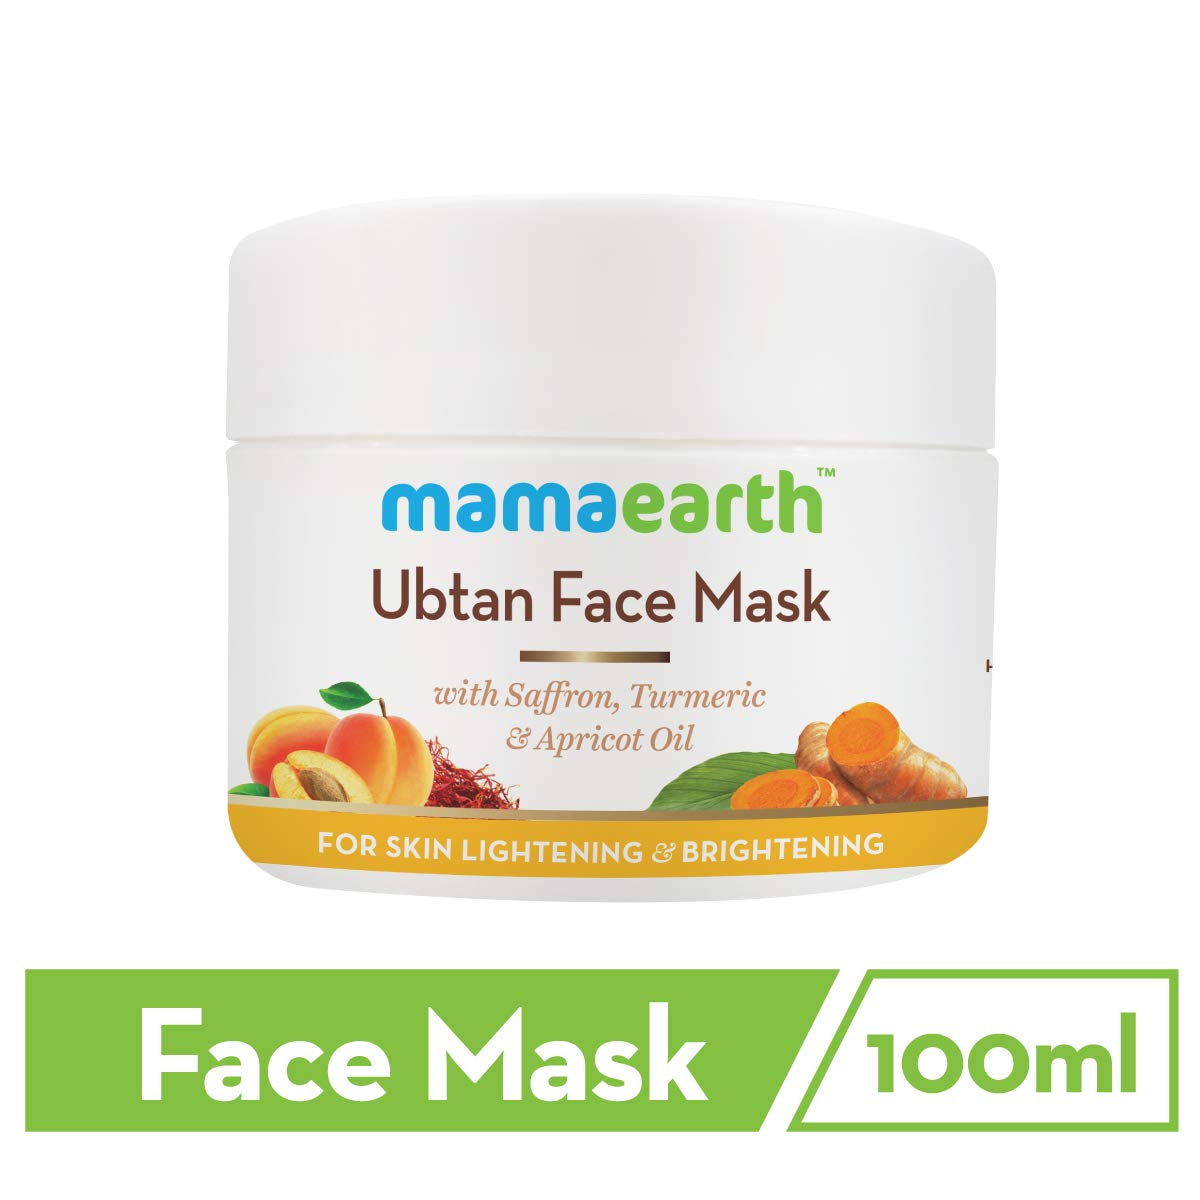 Buy Mamaearth Ubtan Face Pack Mask For Fairness Tanning Glowing Skin With Saffron Turmeric Apricot Oil 100 Ml Online At Low Prices In India Amazon In